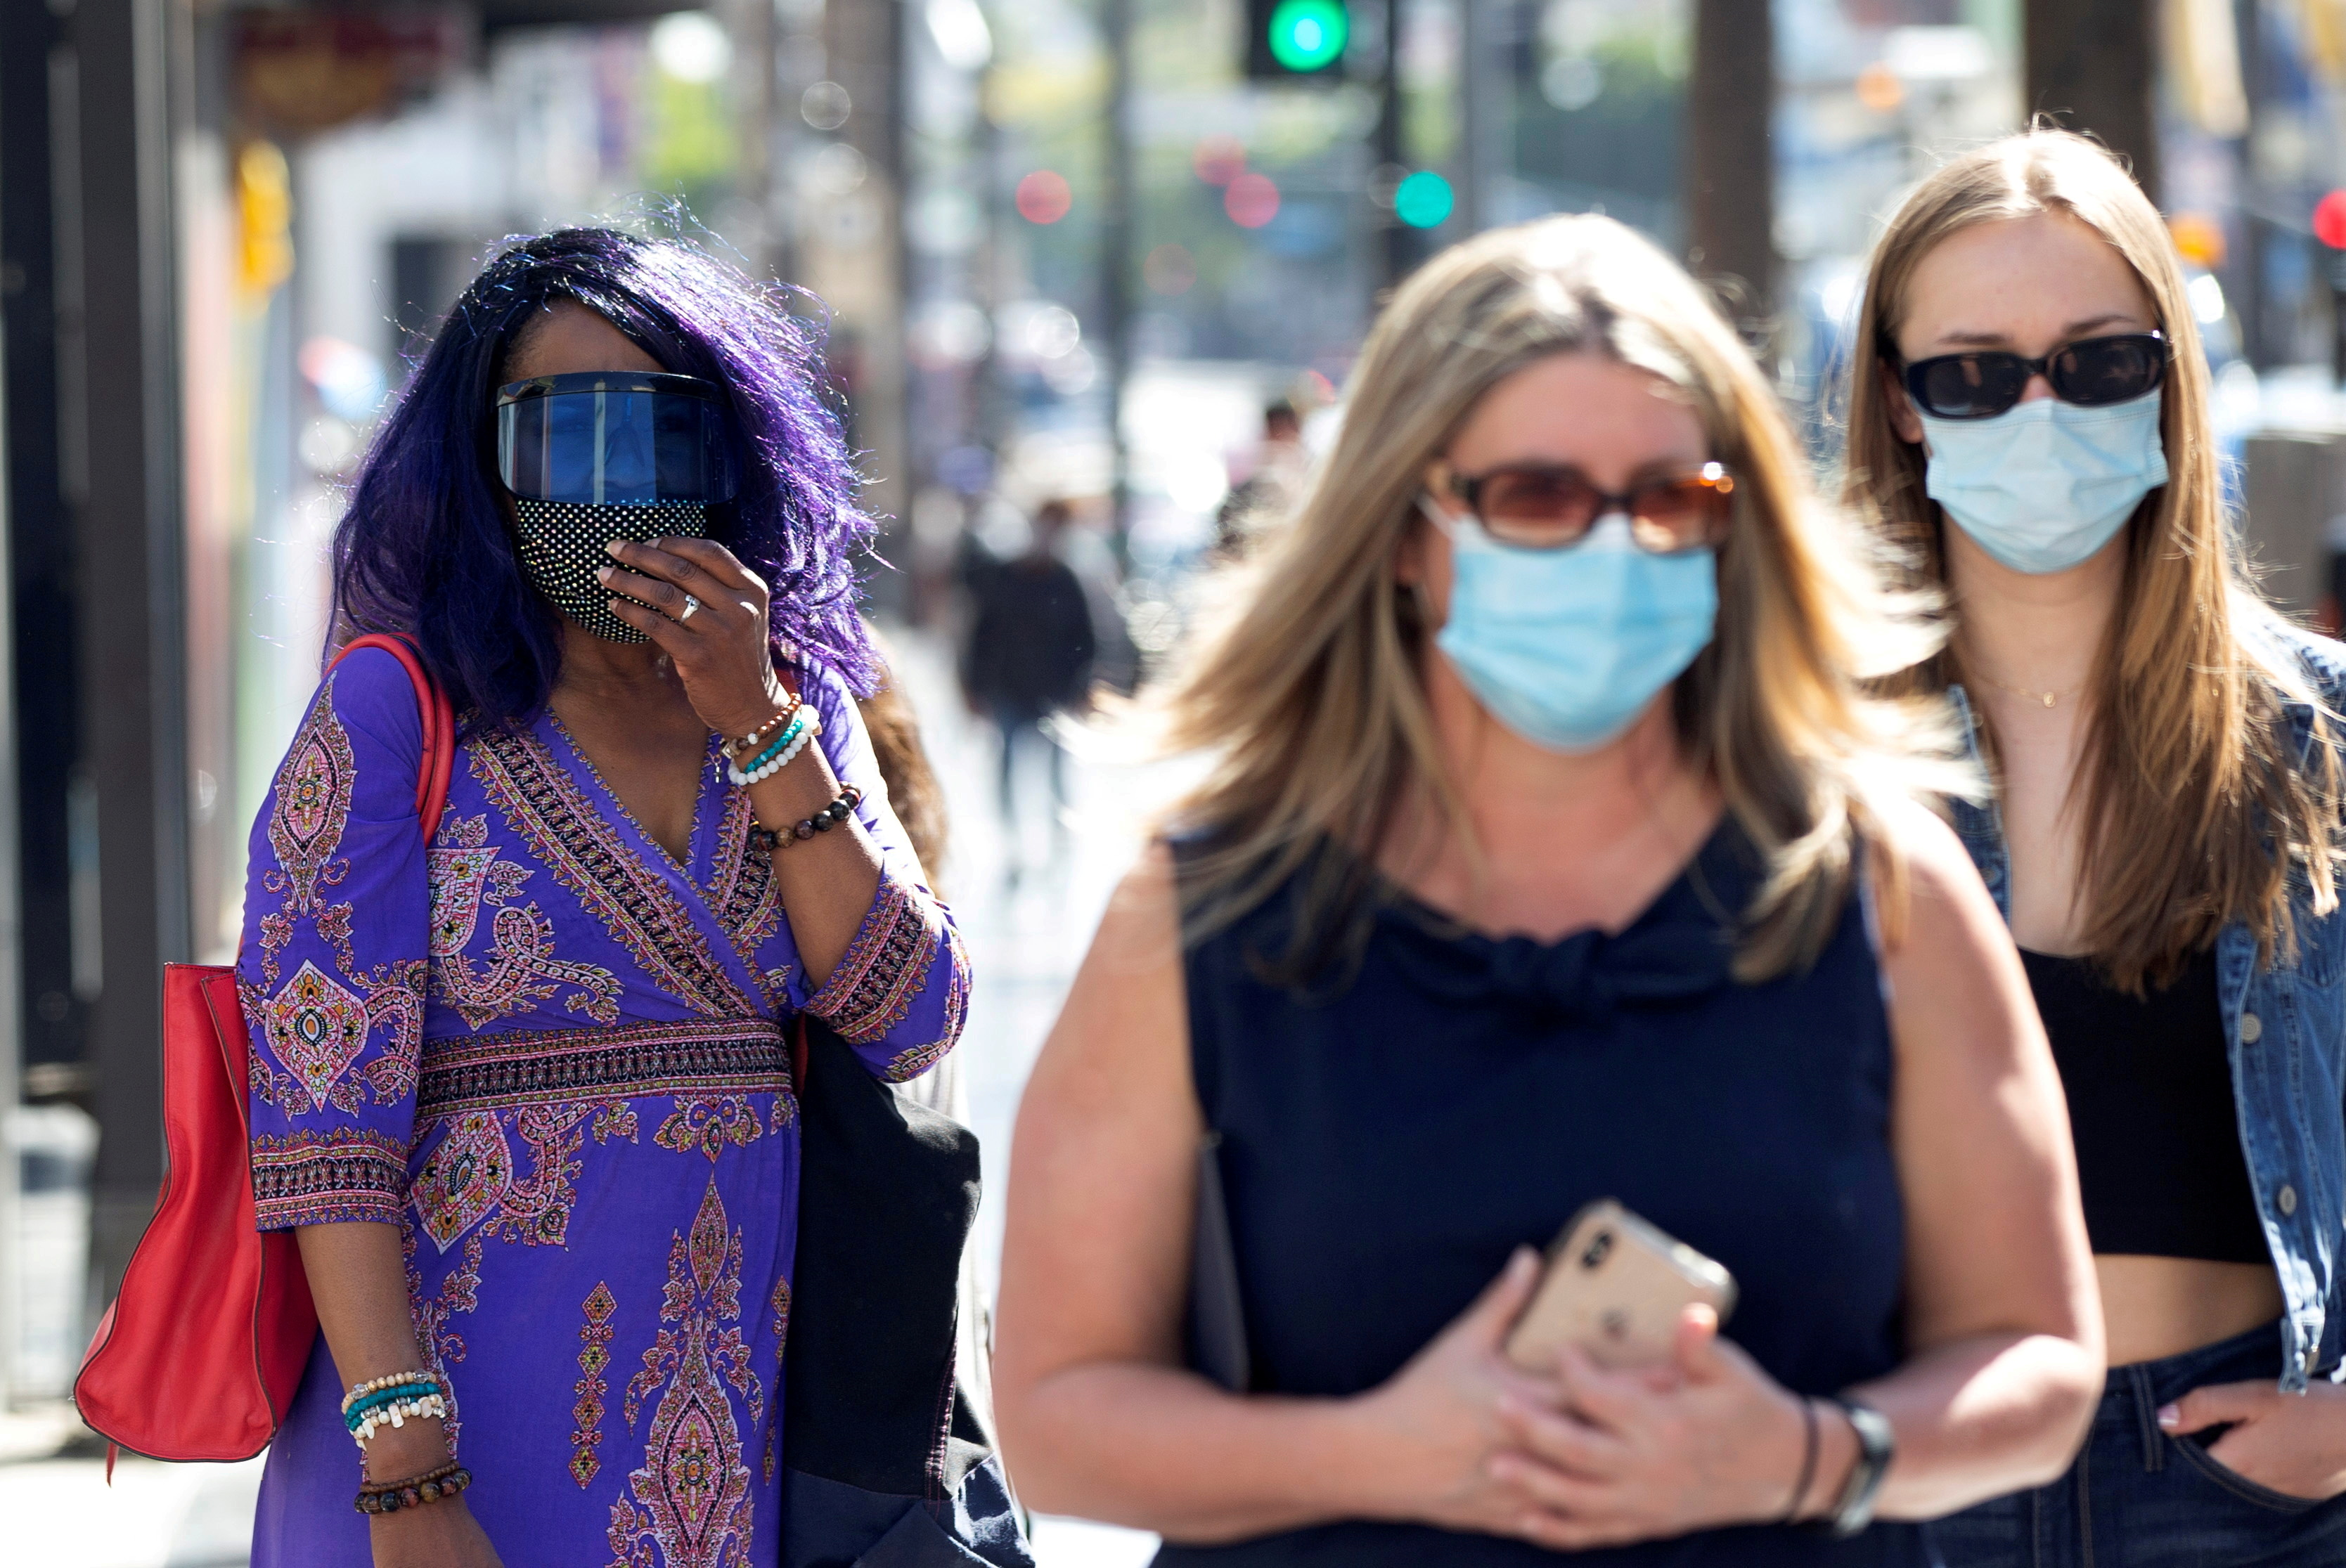 People wearing face protective masks walk on Hollywood Blvd during the outbreak of the coronavirus disease (COVID-19), in Los Angeles, California, U.S., March 29, 2021. REUTERS/Mario Anzuoni/File Photo/File Photo